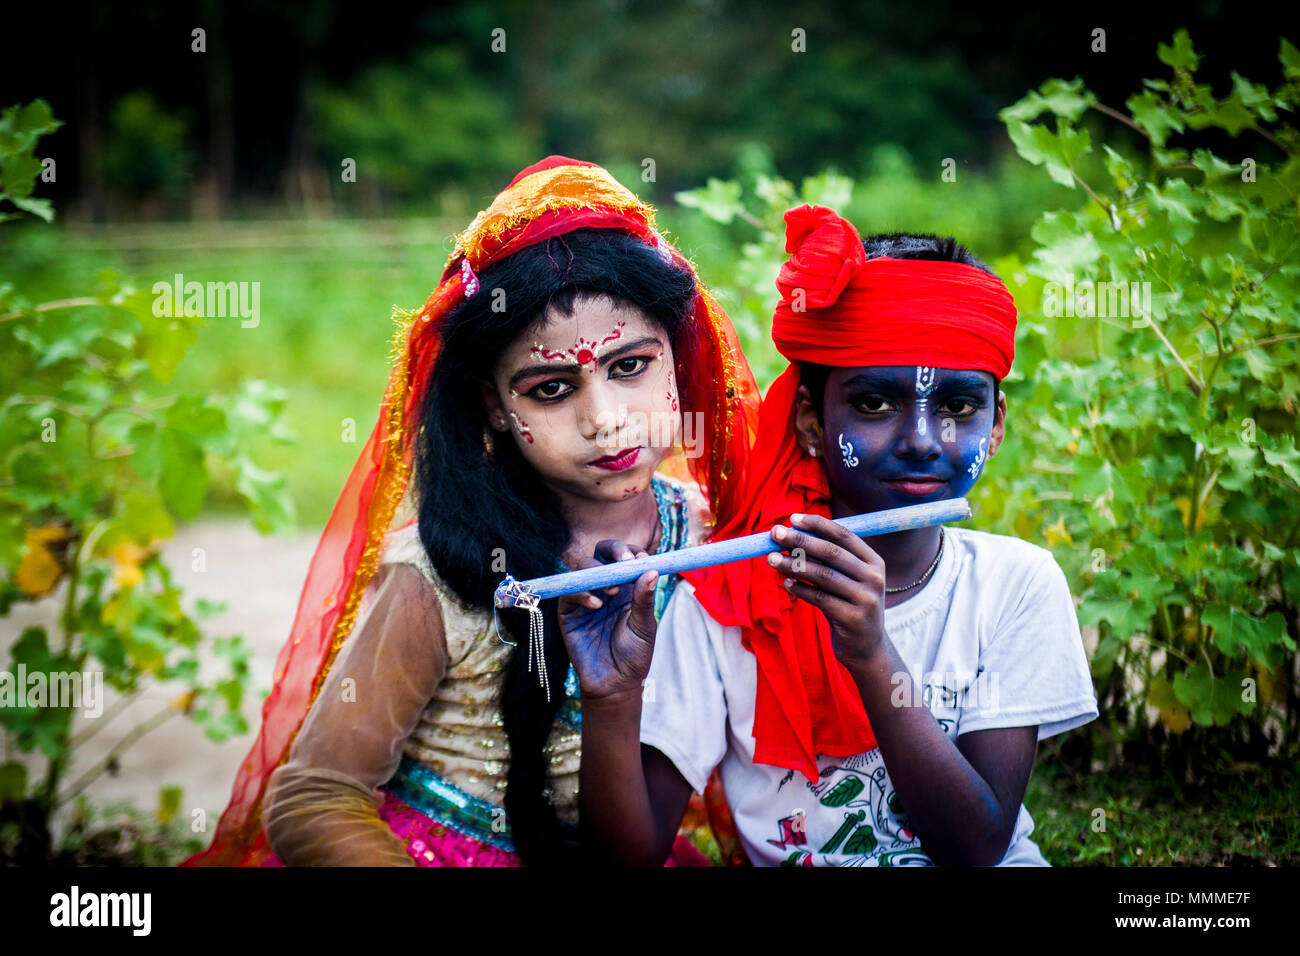 Painted face on the occasion of Charak puja at Tangail in Bangladesh on April 14, 2018. - Stock Image